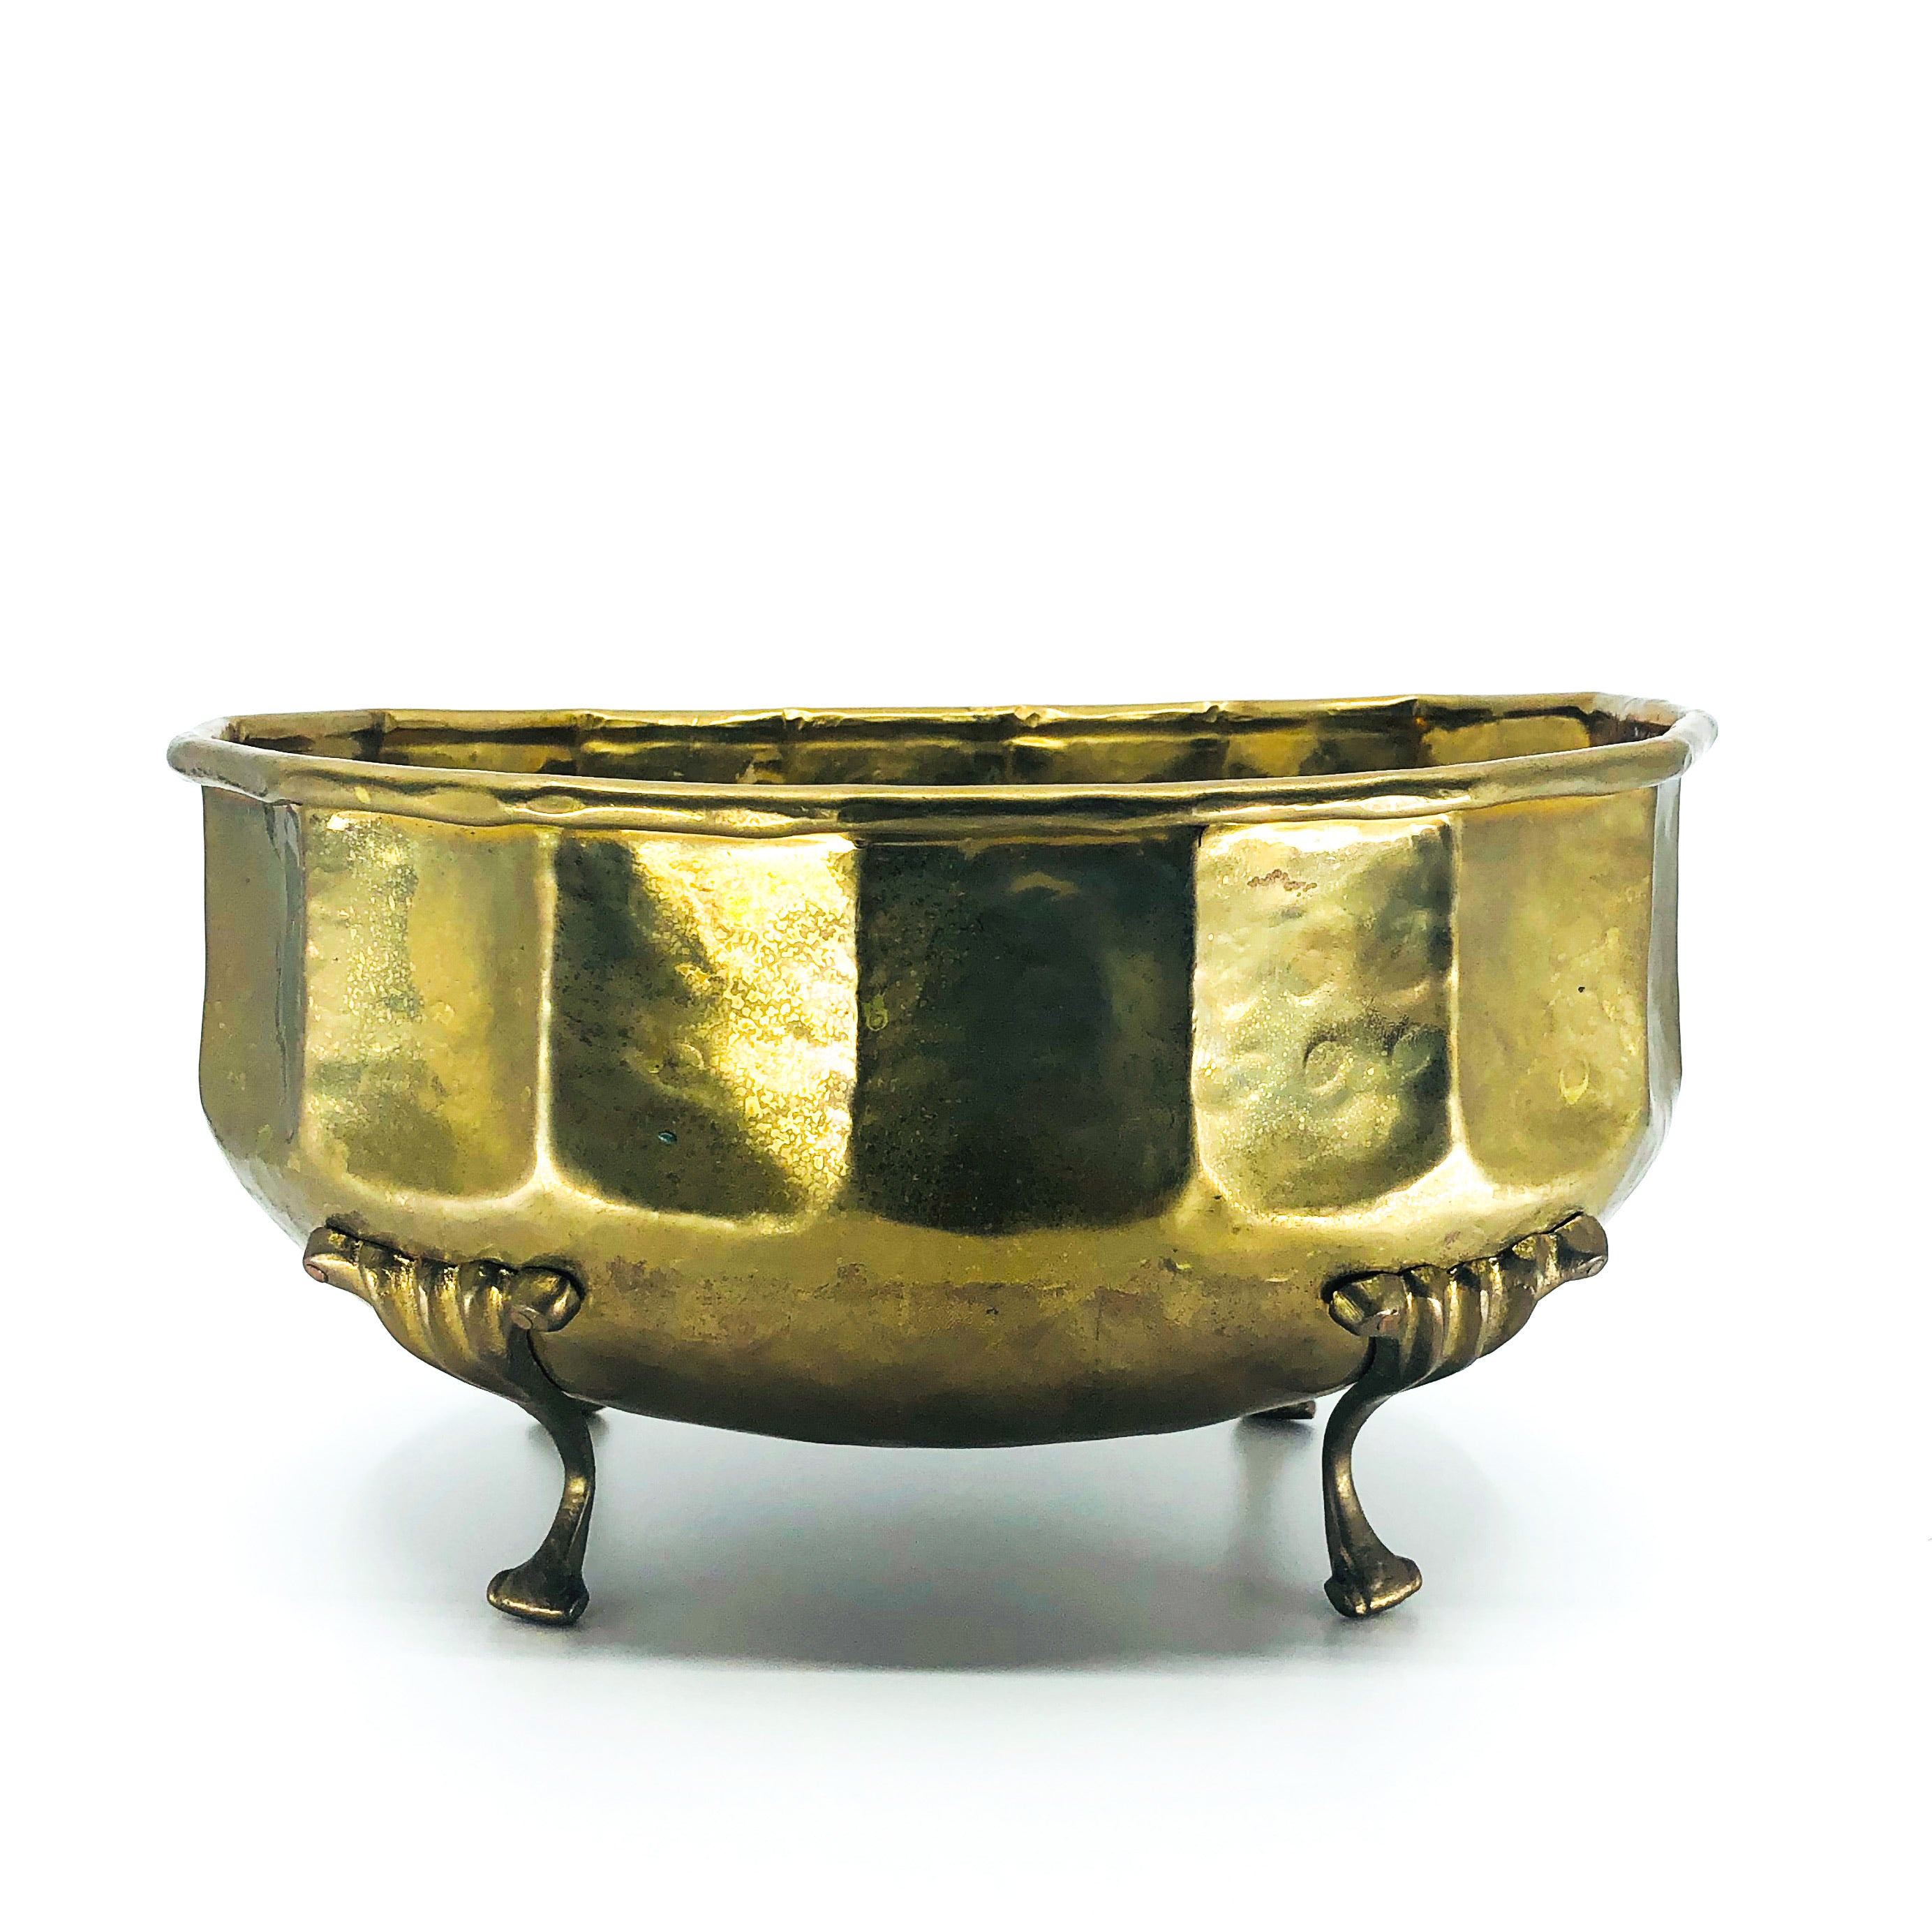 Solid Brass Cachepot with Decorative Footings